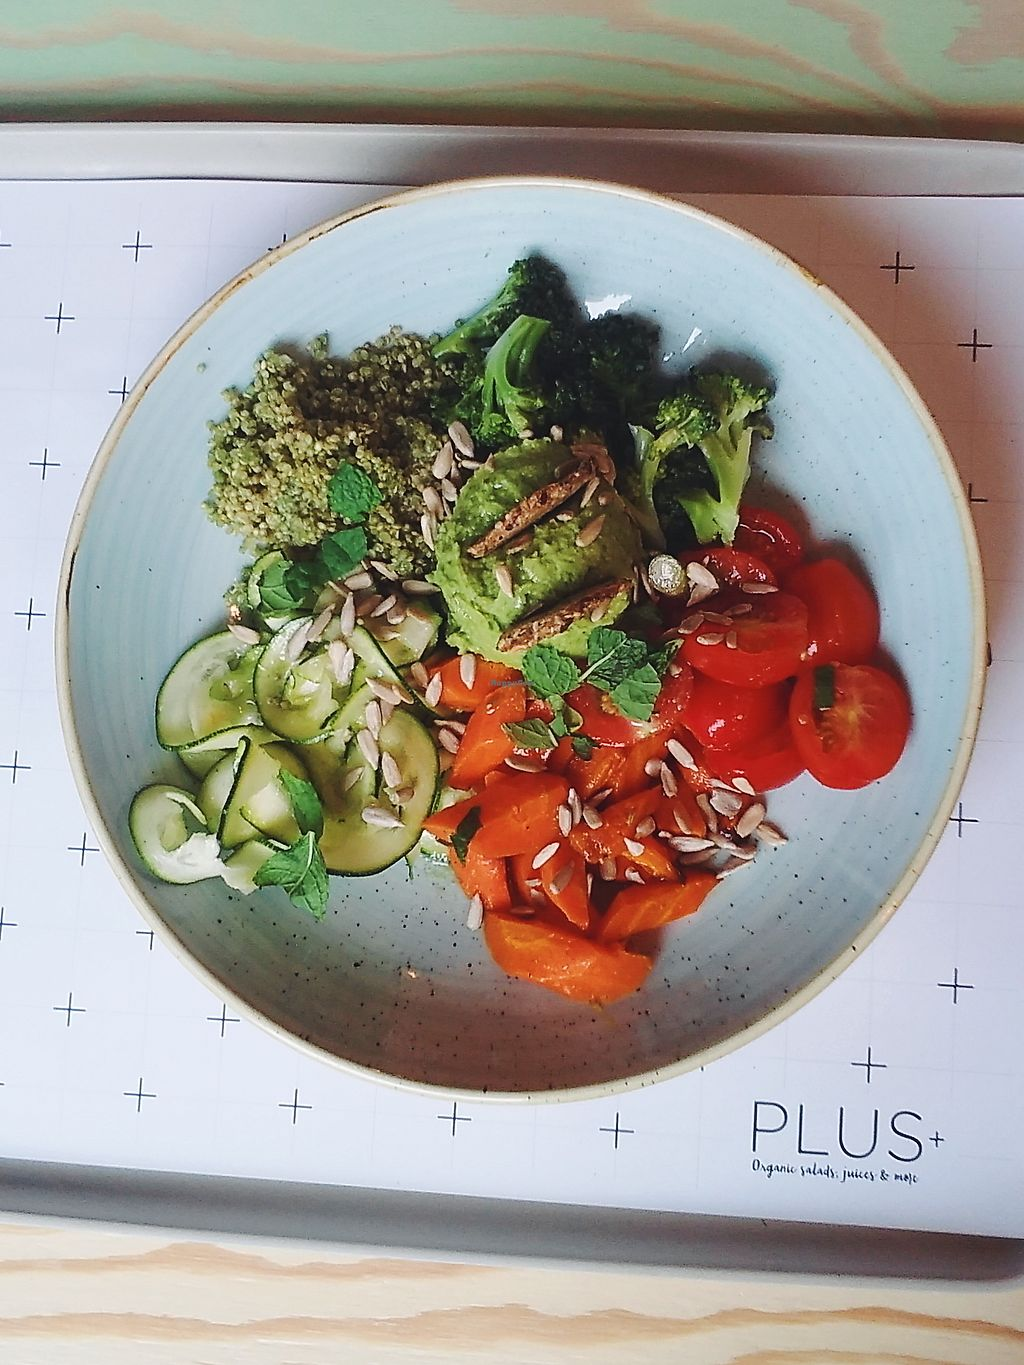 """Photo of PLUS  by <a href=""""/members/profile/unmond"""">unmond</a> <br/>vegan salad option <br/> July 21, 2017  - <a href='/contact/abuse/image/72433/282859'>Report</a>"""